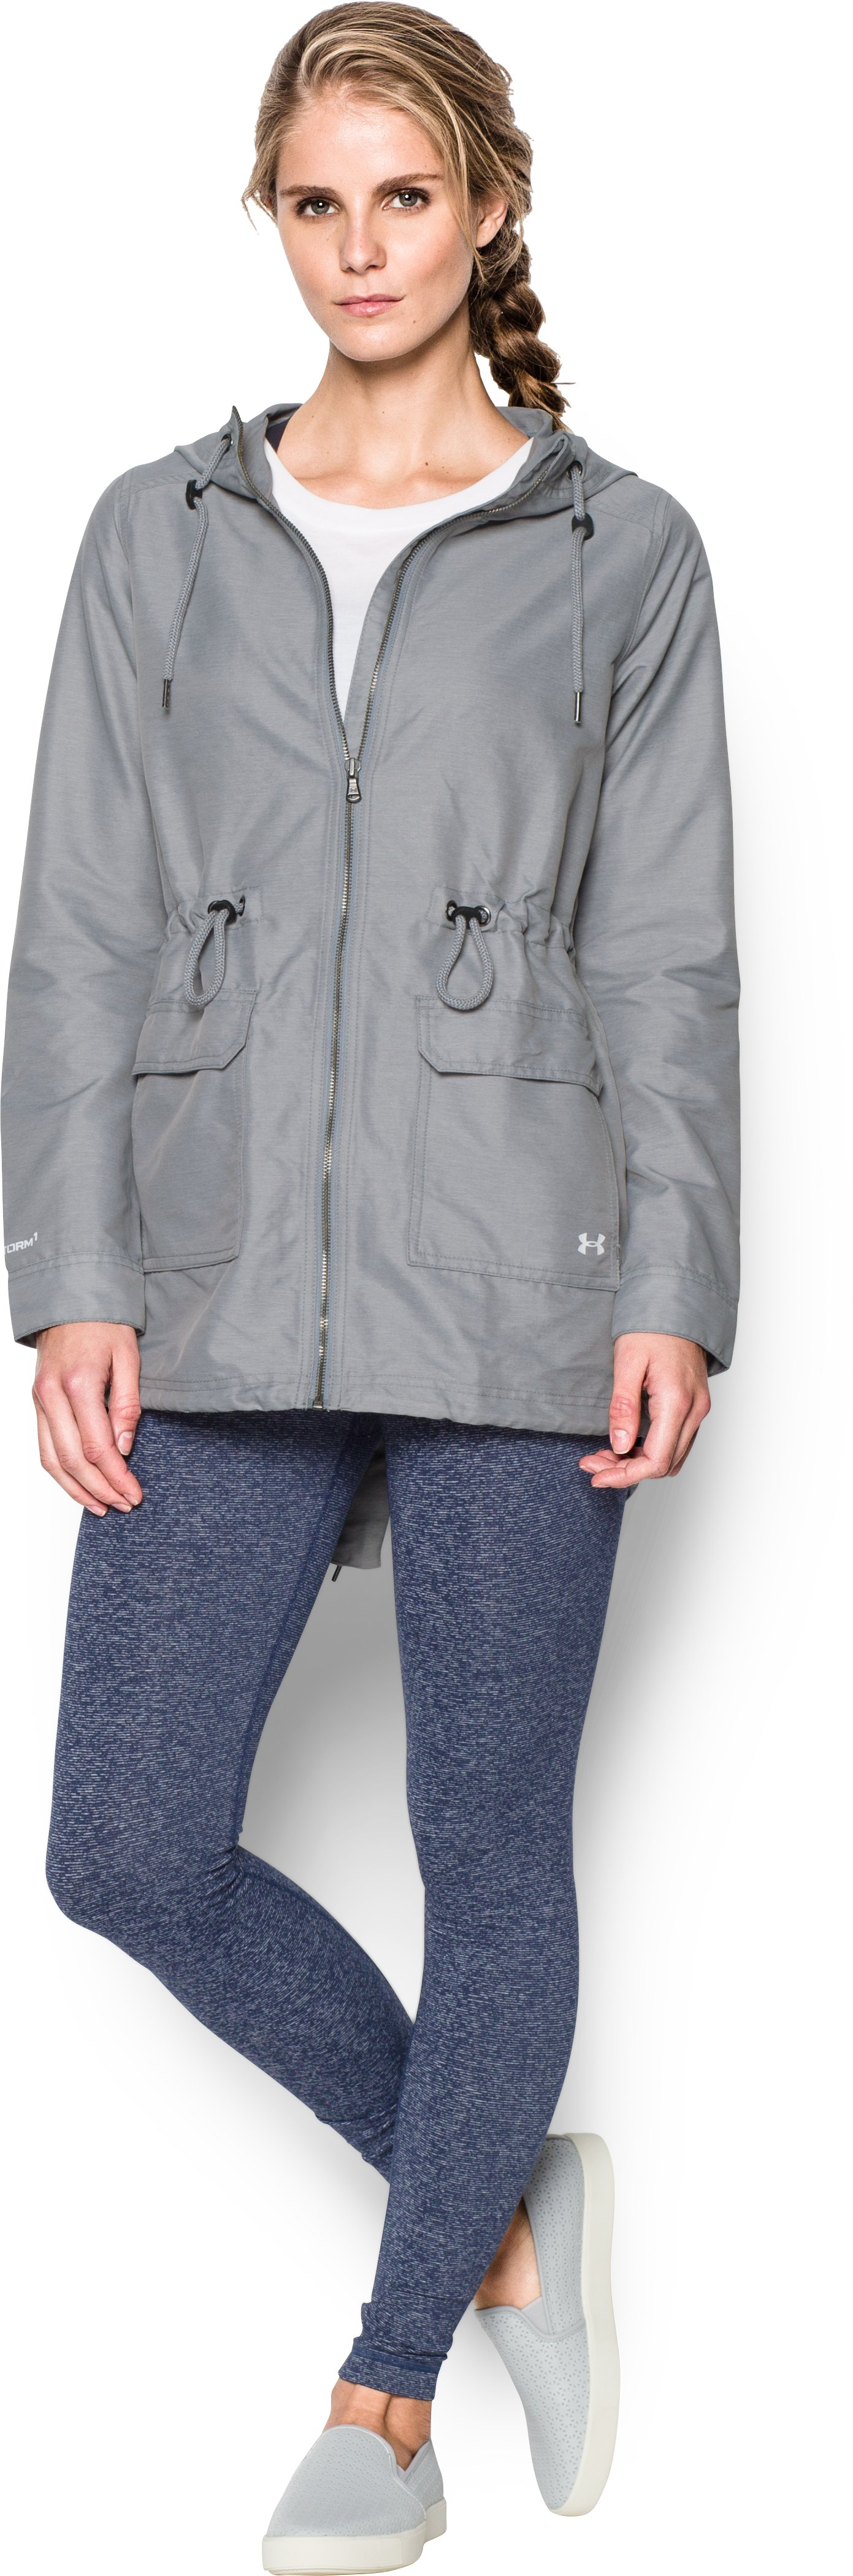 Women's Twill Rain Jacket, Steel, zoomed image